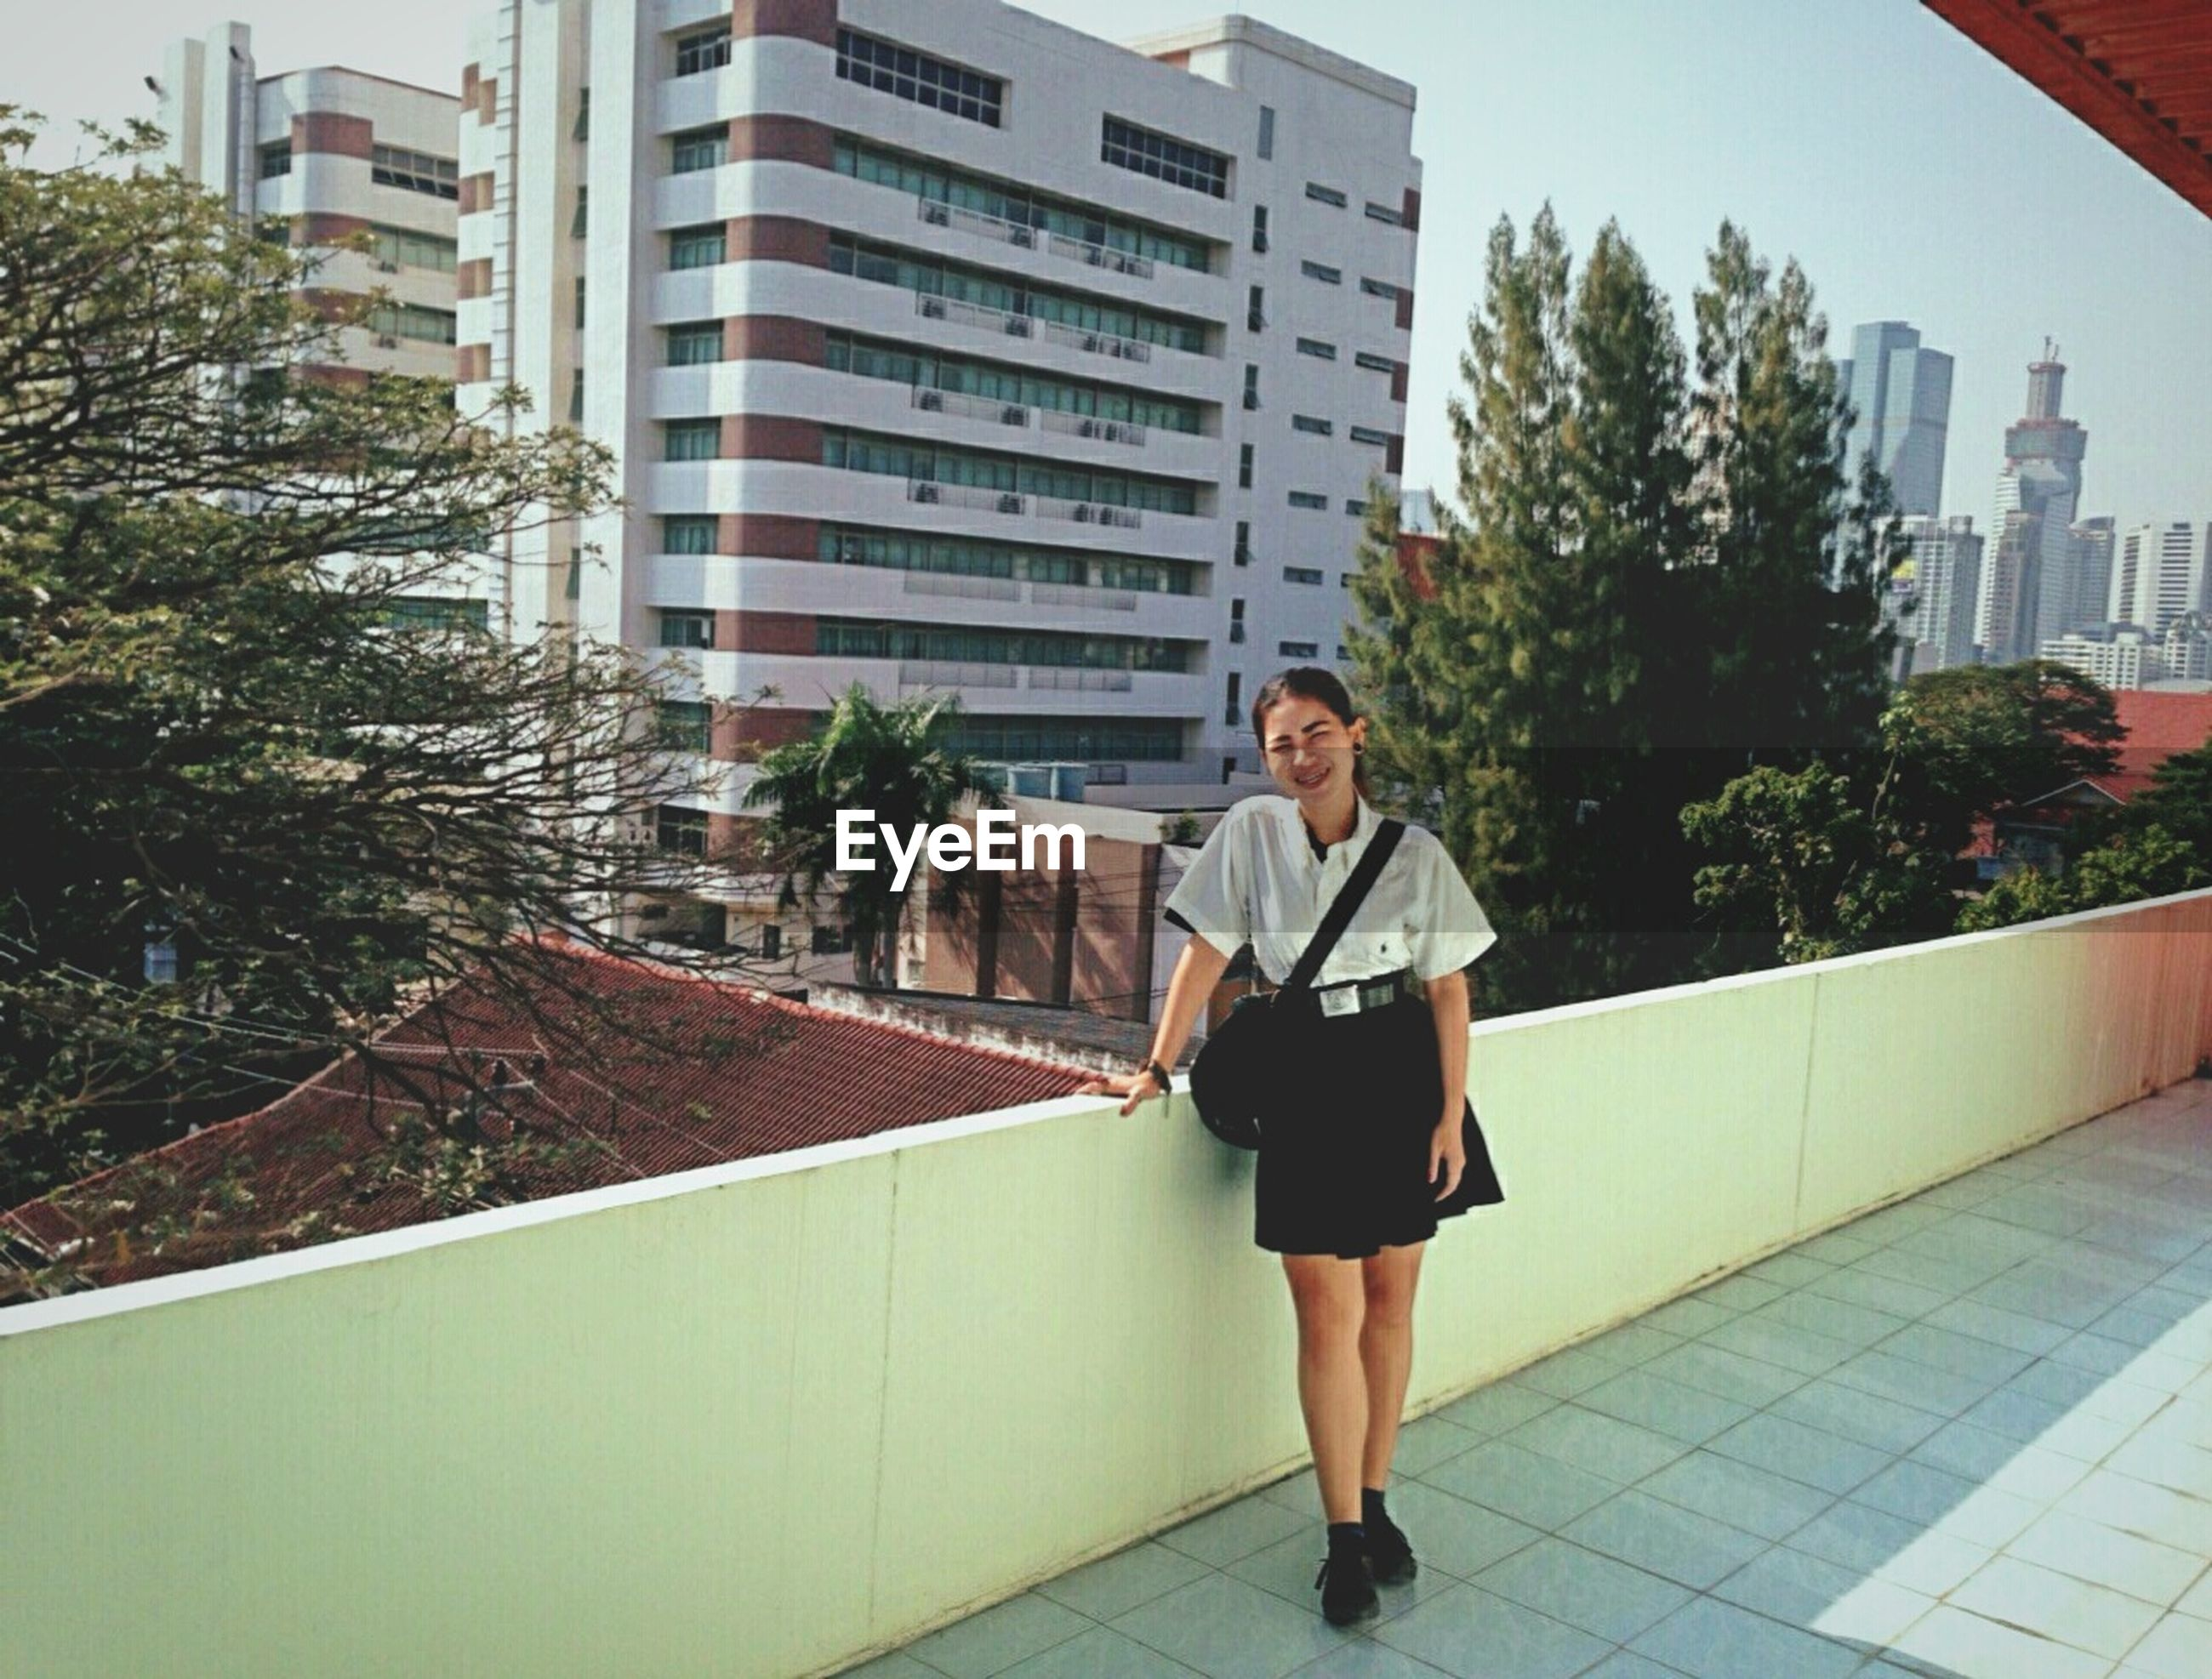 building exterior, architecture, full length, built structure, lifestyles, casual clothing, city, young adult, leisure activity, tree, walking, young women, rear view, standing, building, person, city life